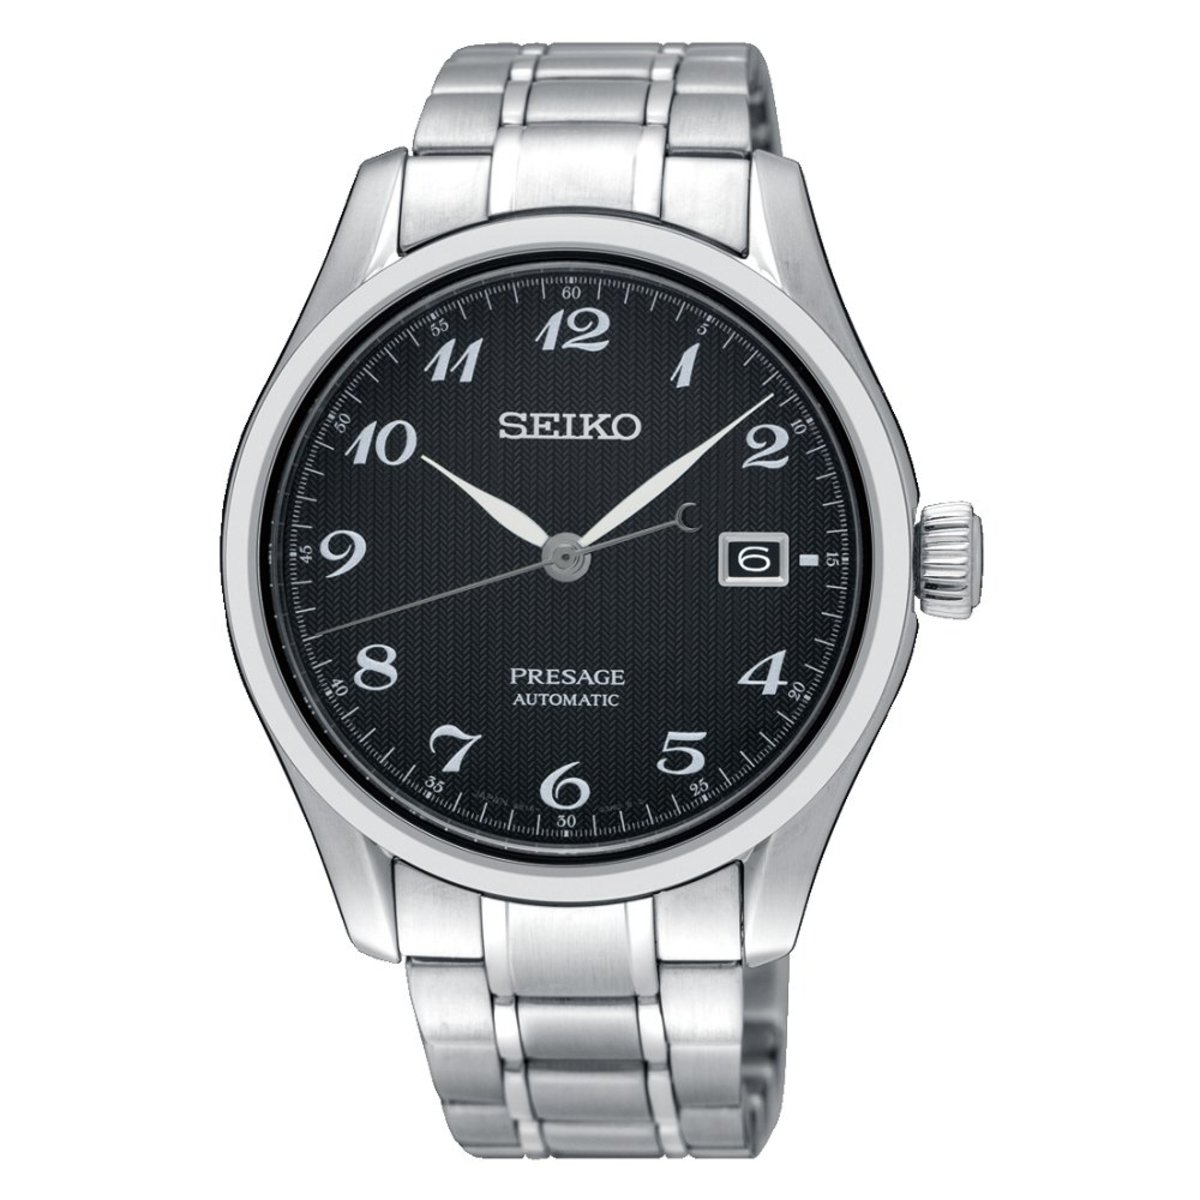 Seiko PRESAGE Prestige Line Automatic Mechanical Watch SPB065J1